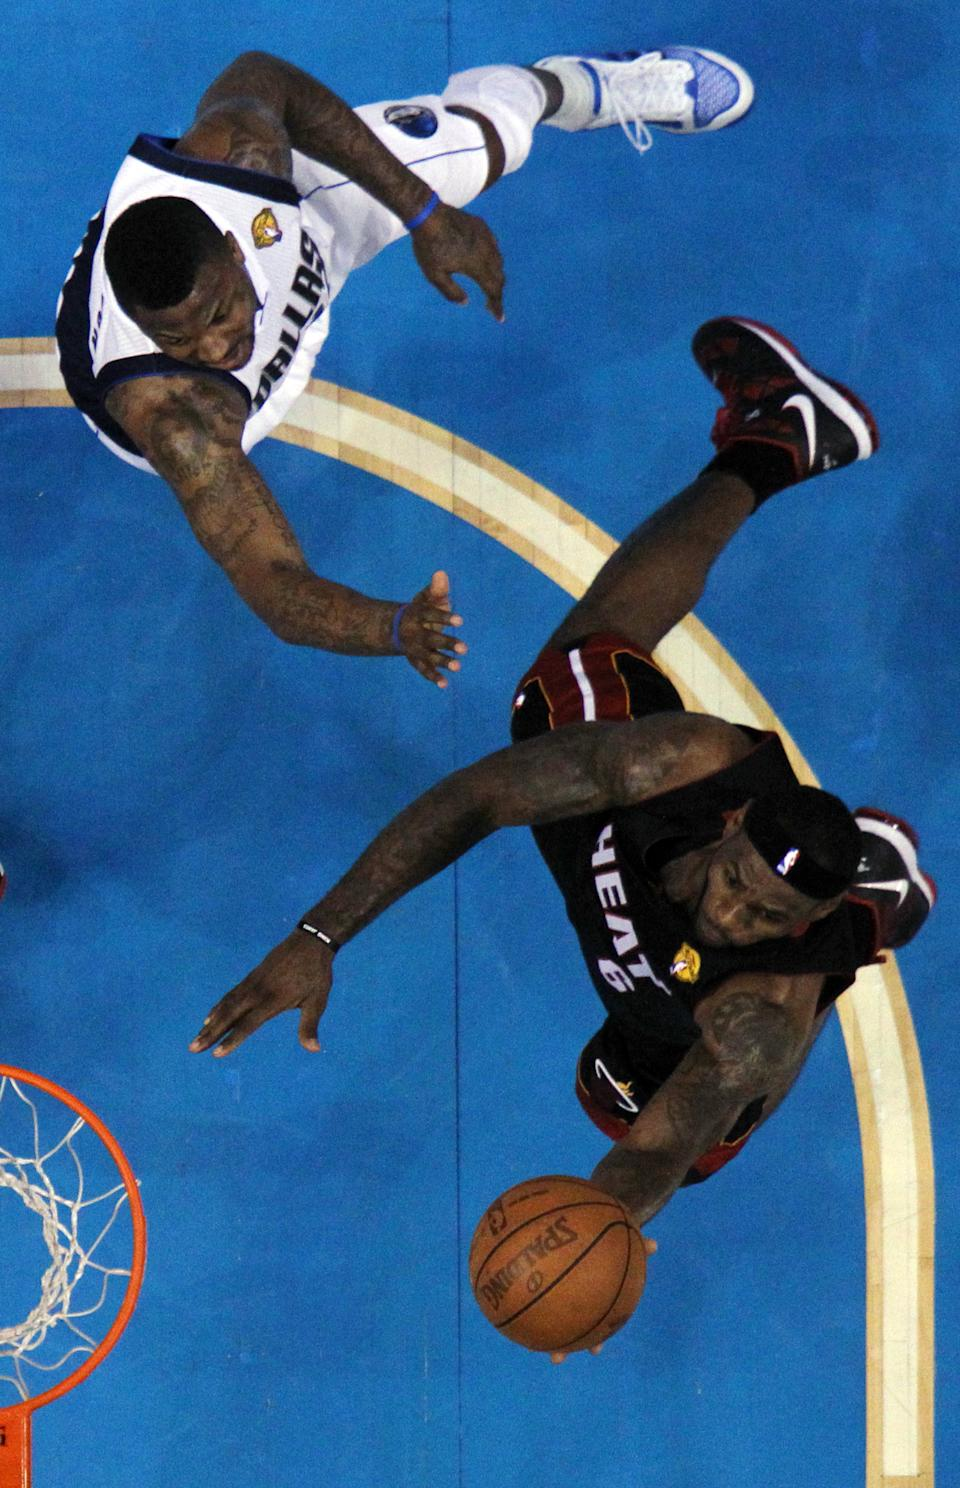 Miami Heat's LeBron James goes up for a shot with Dallas Mavericks' DeShawn Stevenson defending during the first half of Game 5 of the NBA Finals basketball game Thursday, June 9, 2011, in Dallas. (AP Photo/Ronald Martinez; Pool)